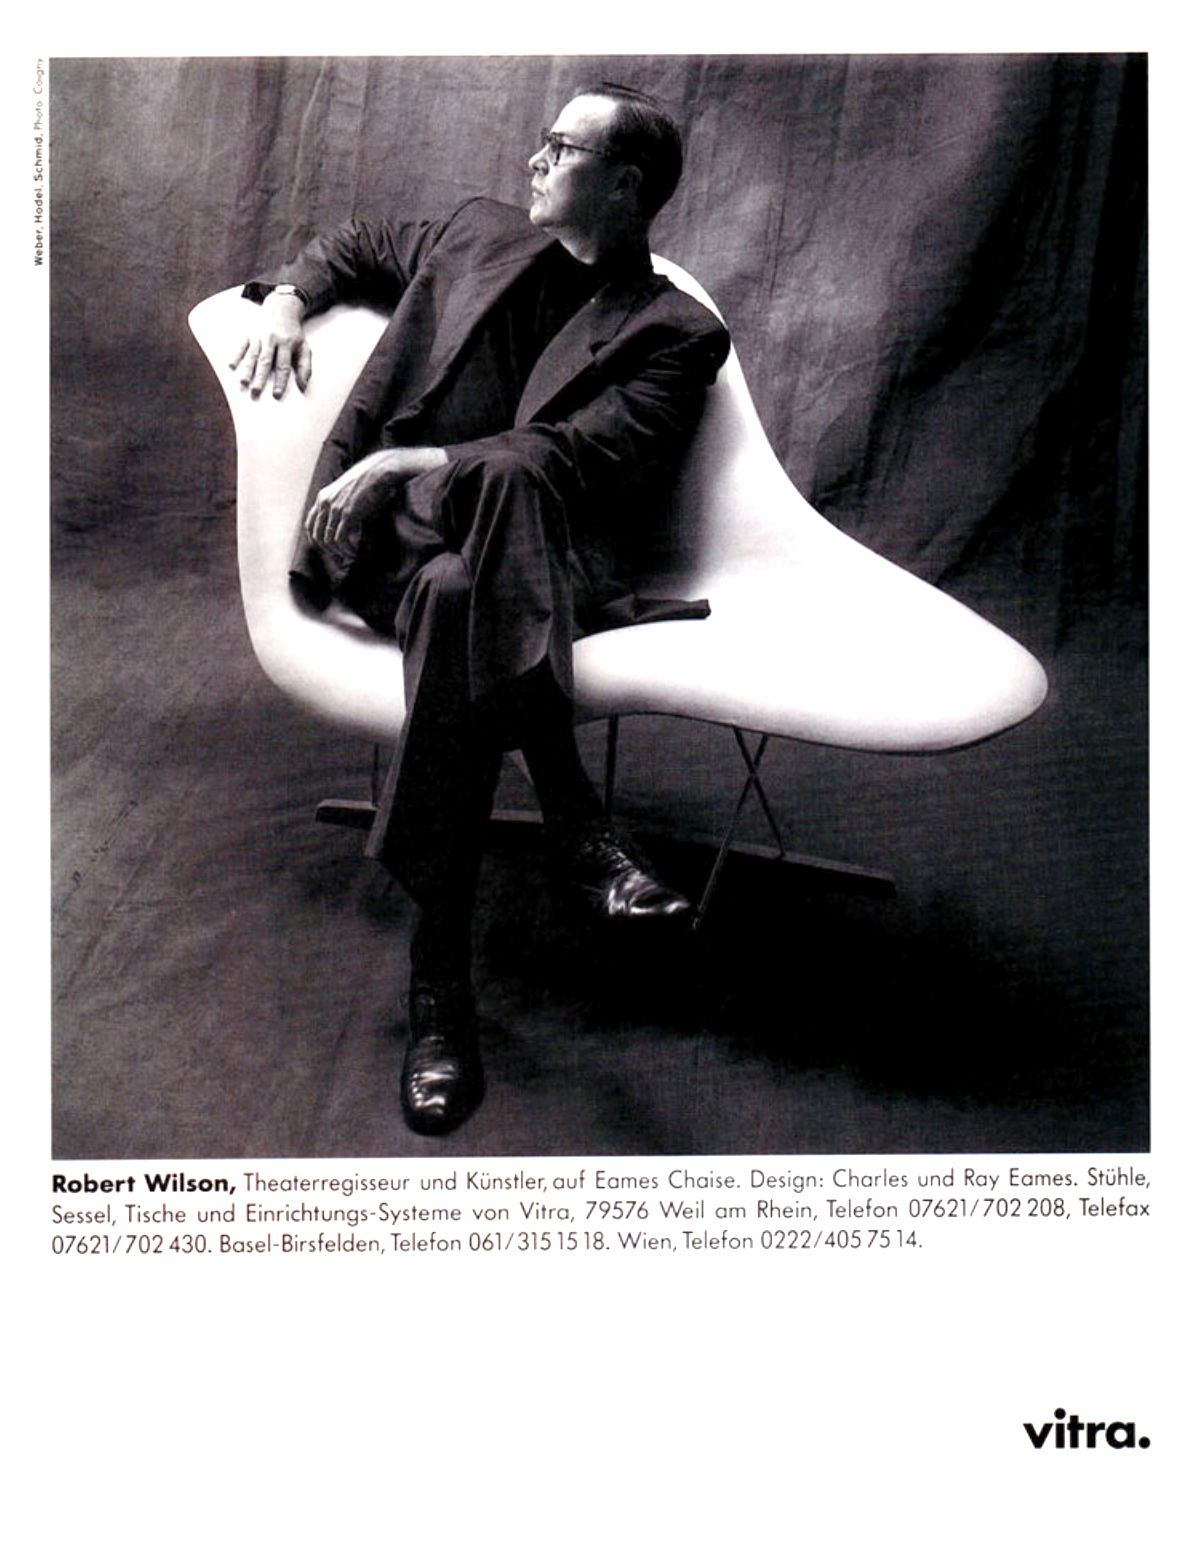 Renowned Artist Robert Wilson Robertwilson Sitting On A Vitra Eames La Chaise In This Vintage 1995 Vitra Vitra Eames Chaise Comfortable Living Room Chairs